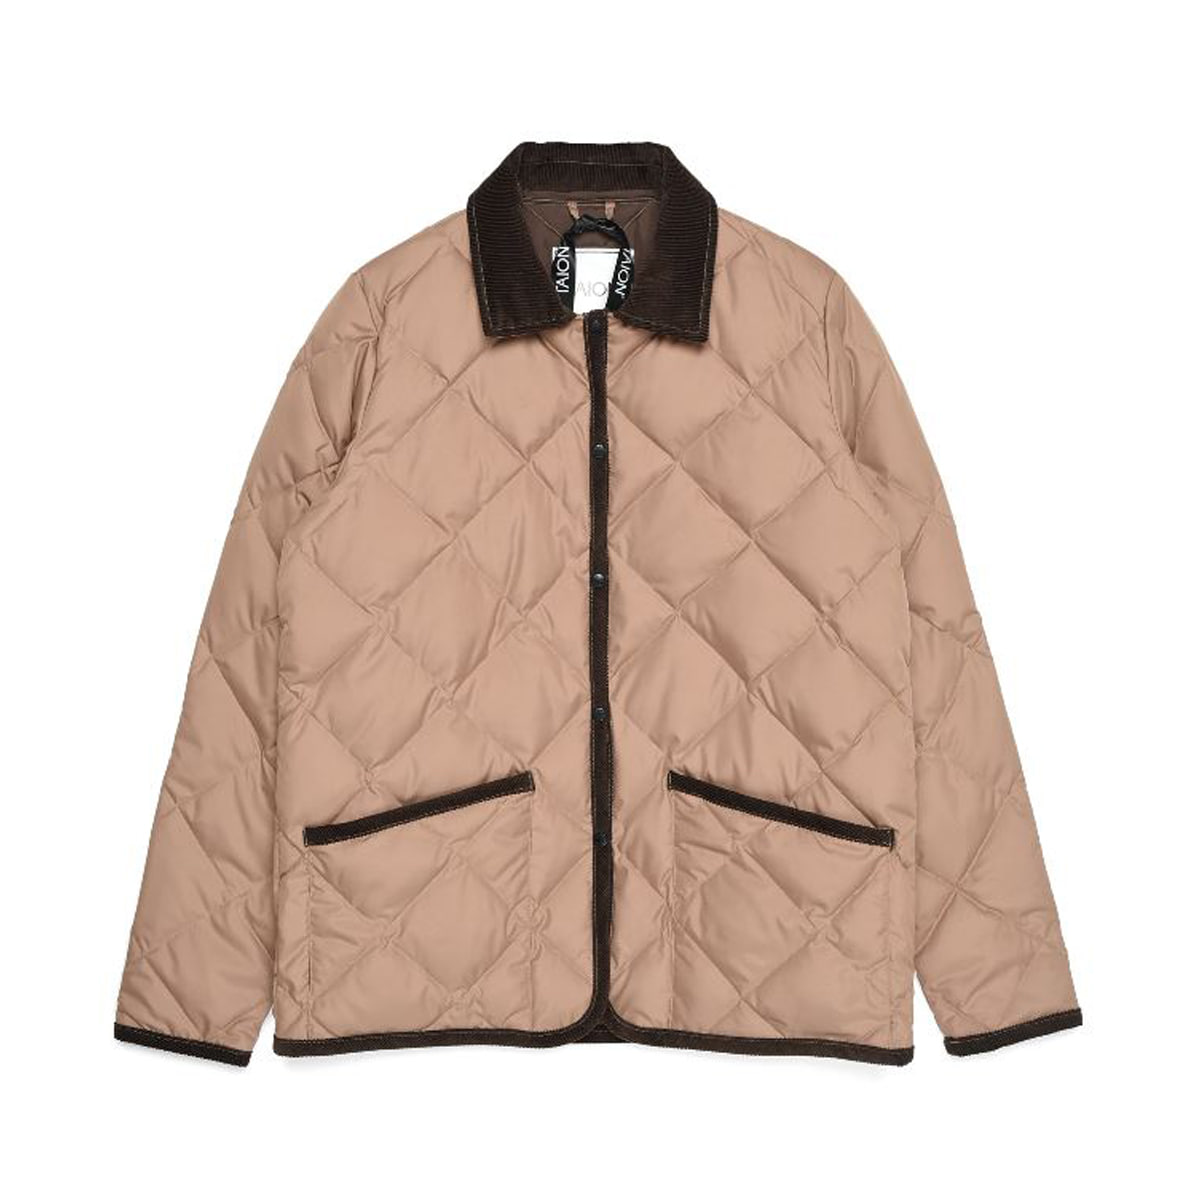 [TAION] PIPING COLLARED DOWN JACKET (TAION-109CI) 'BEIGE'